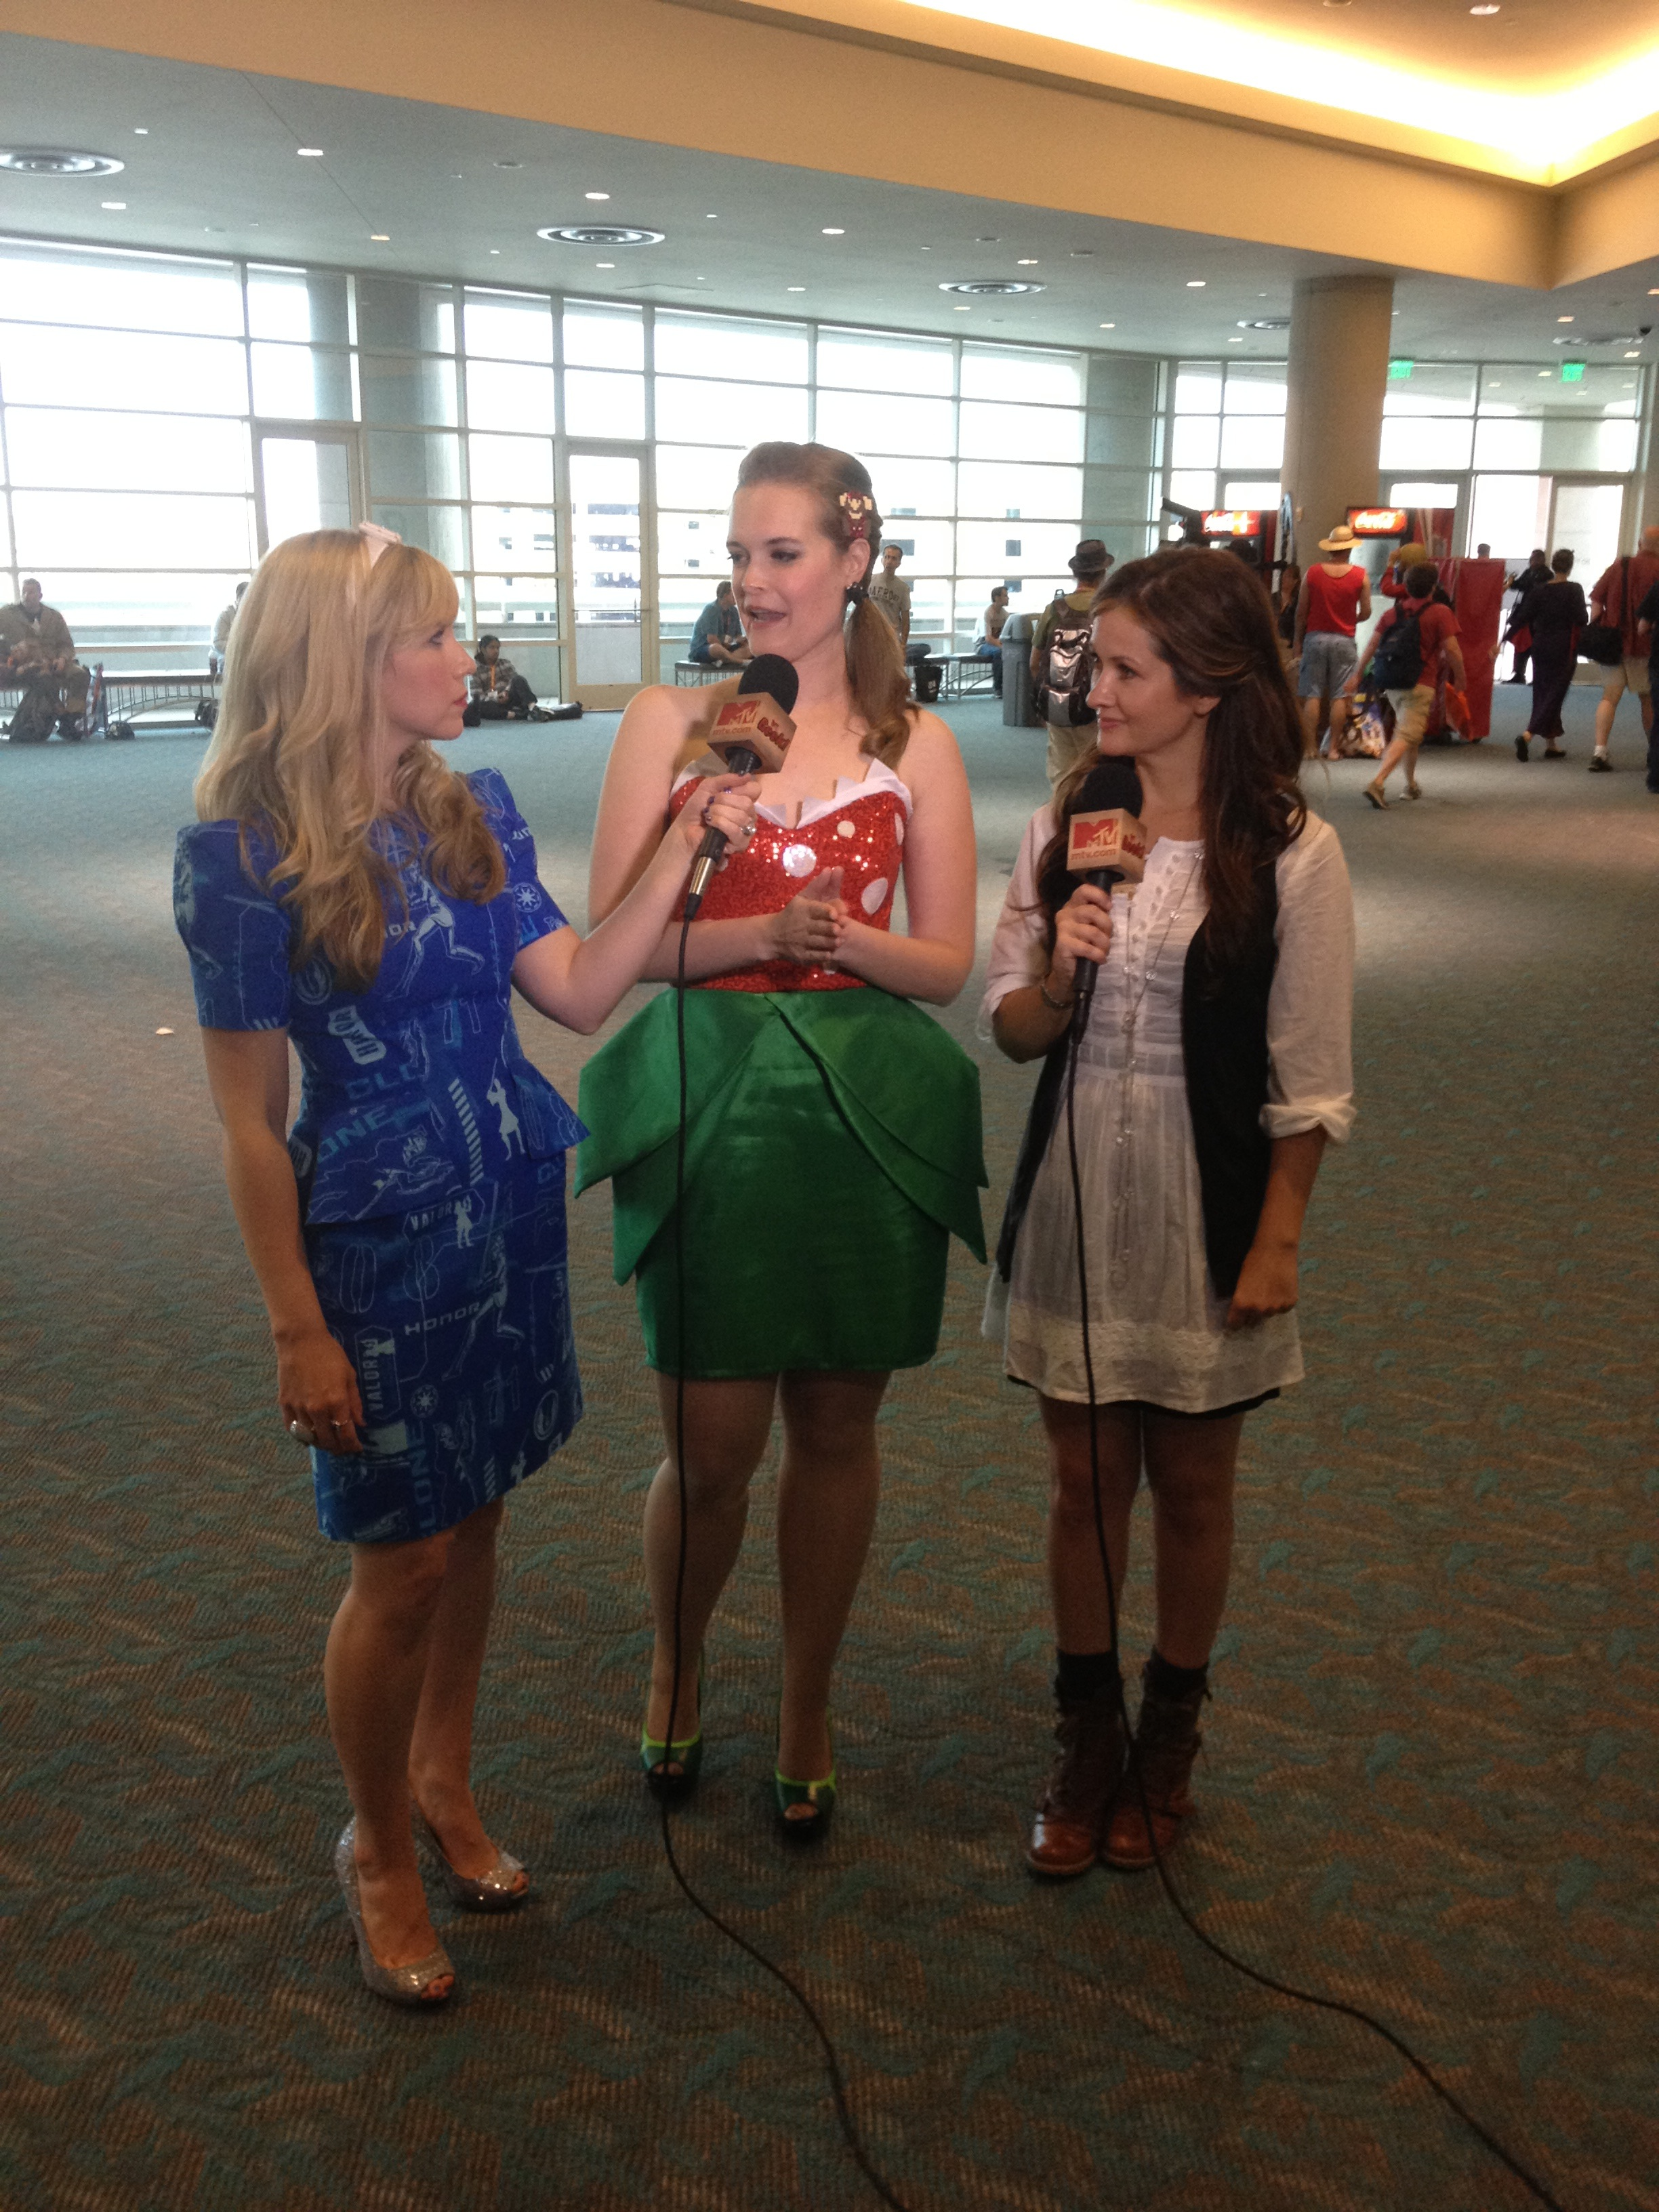 Clone Wars Co-Hosts! Me and Catherine Taber interview 2nd place winner Lindz in her Mario Brothers dress!